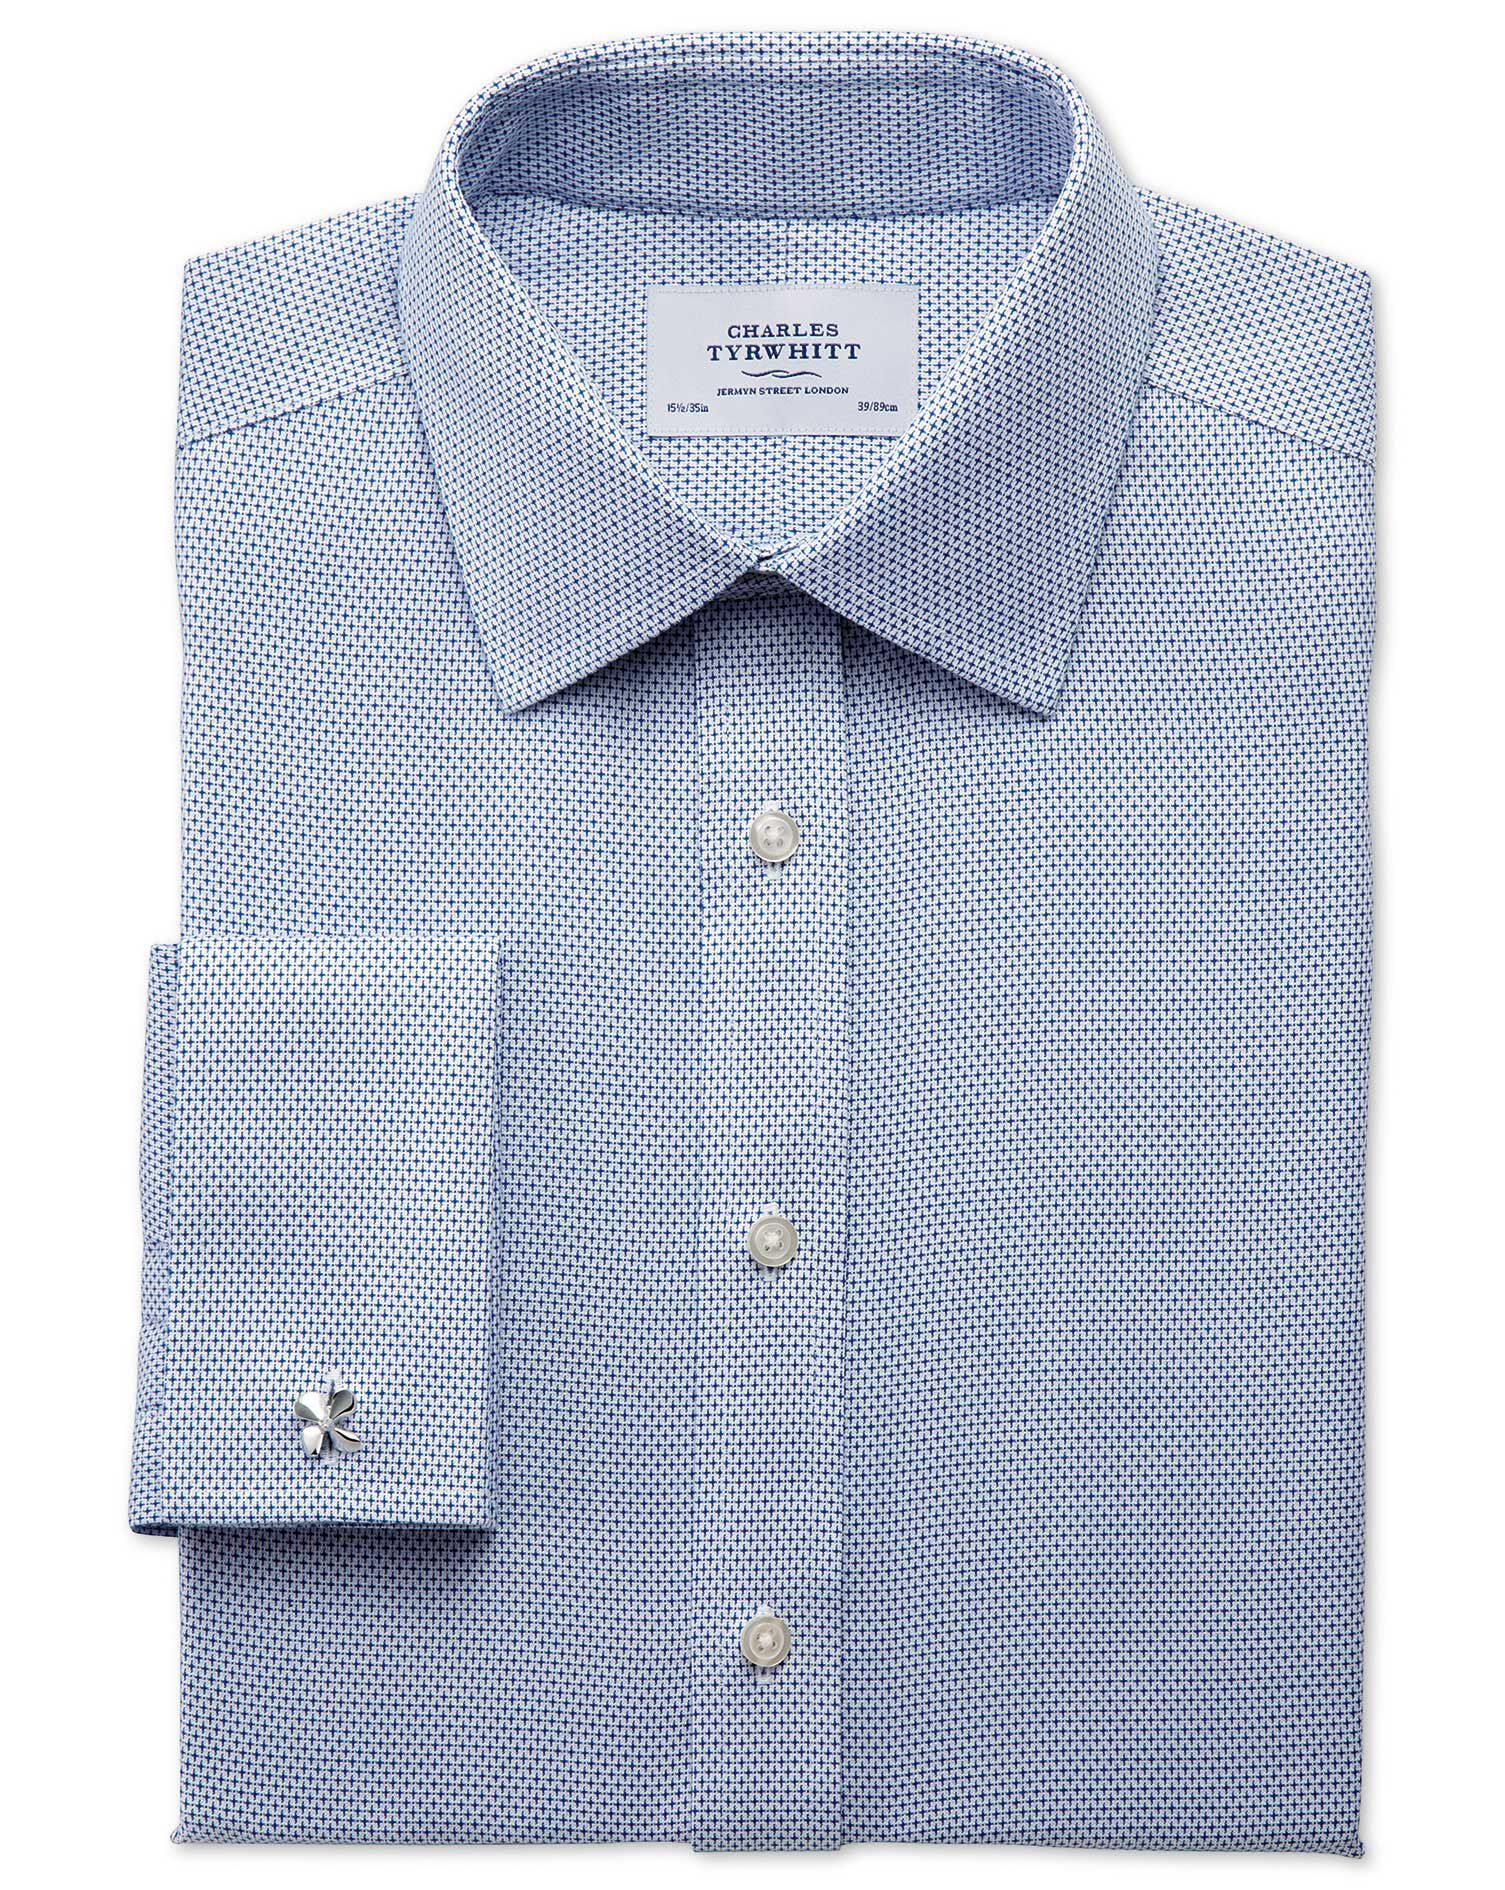 Extra Slim Fit Non-Iron Imperial Weave Blue Cotton Formal Shirt Double Cuff Size 16/33 by Charles Ty